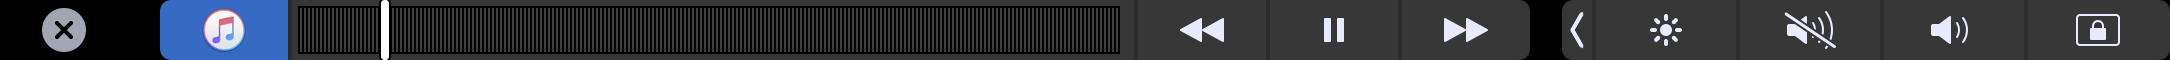 Touch Bar Shot 2017-01-07 at 11.45.00 AM.png